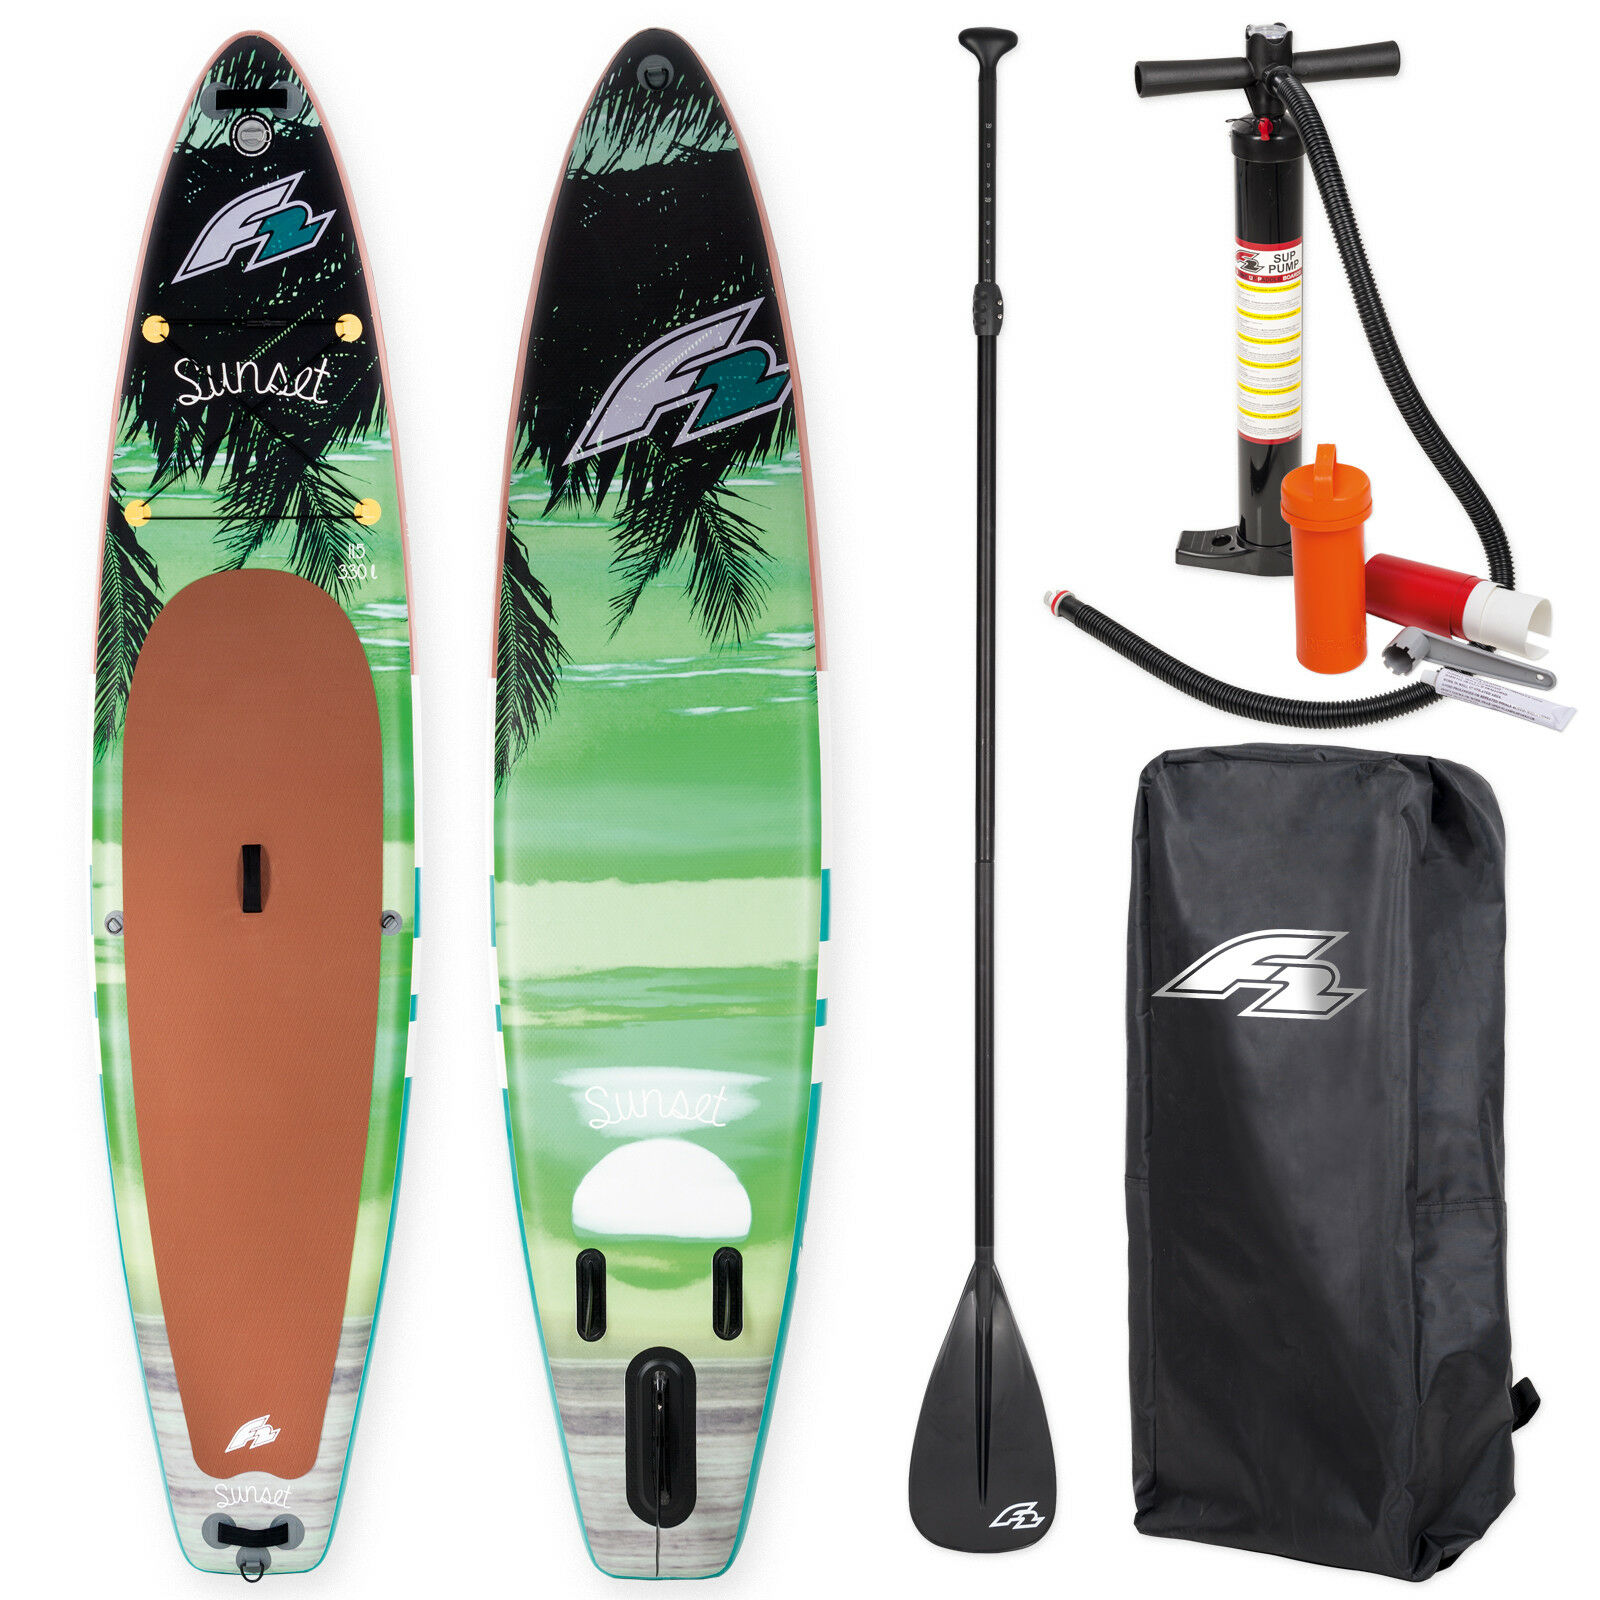 F2 Sup Sunset verde 11,5  Stand Up Paddle Board + Remos y Bomba  Testboard